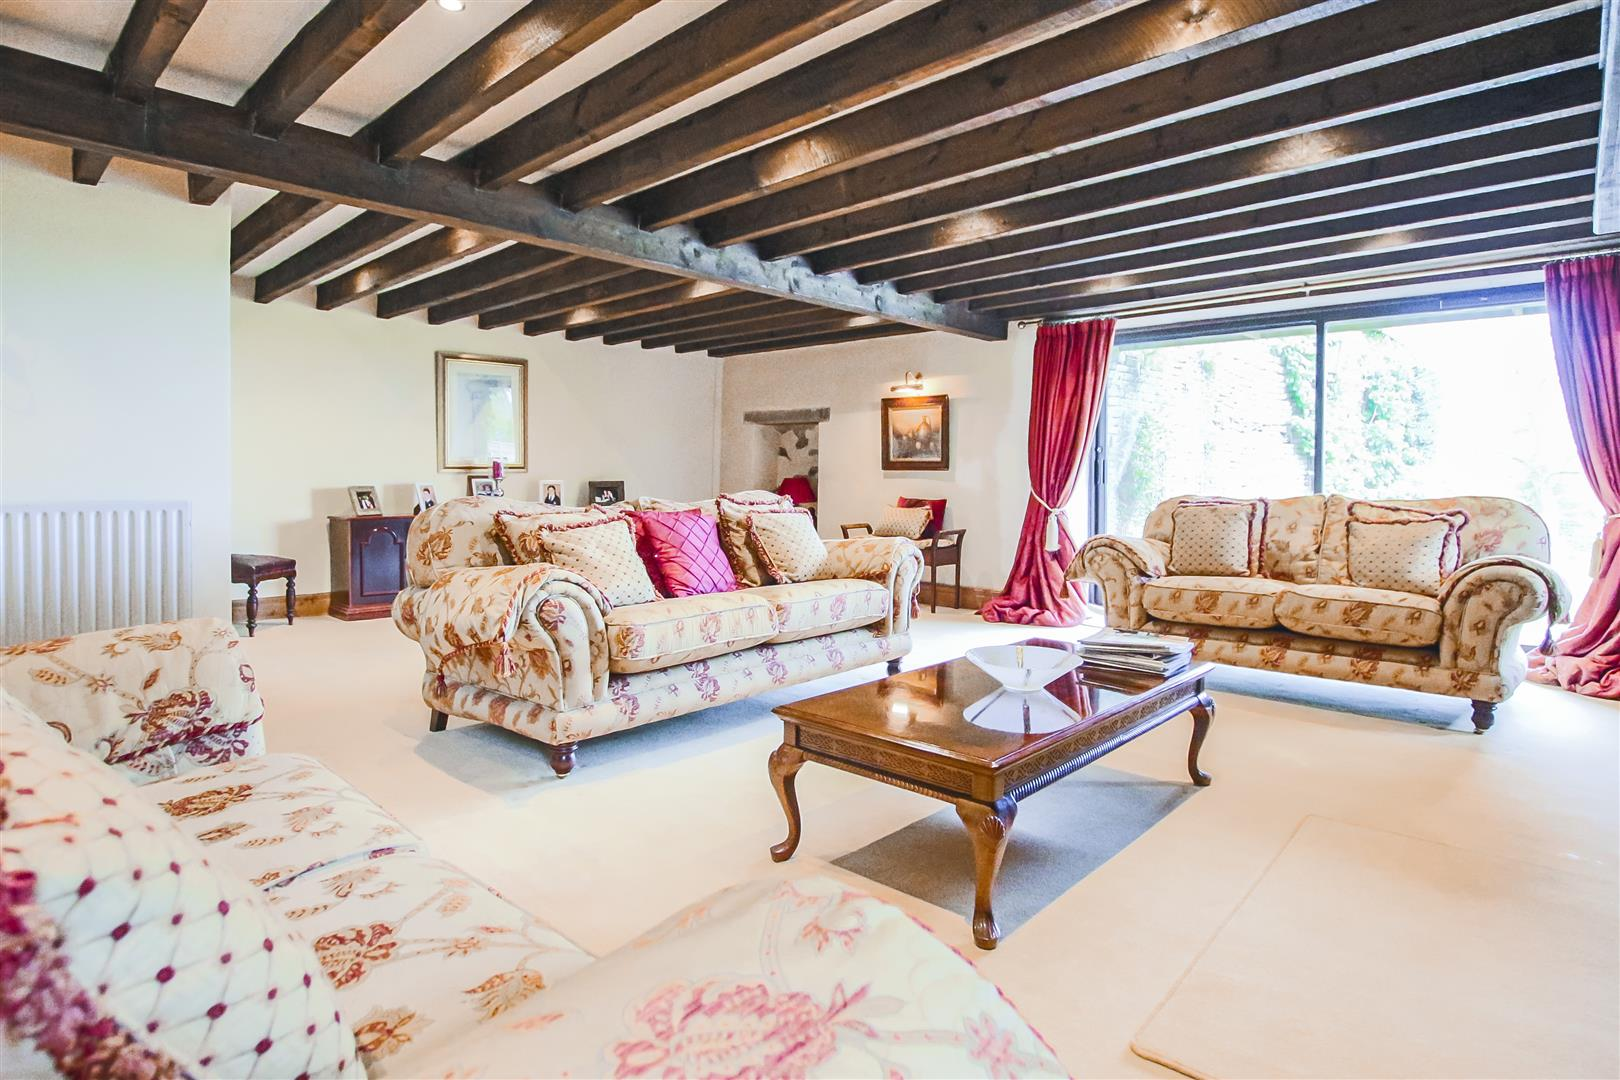 5 Bedroom Barn Conversion For Sale - Image 2